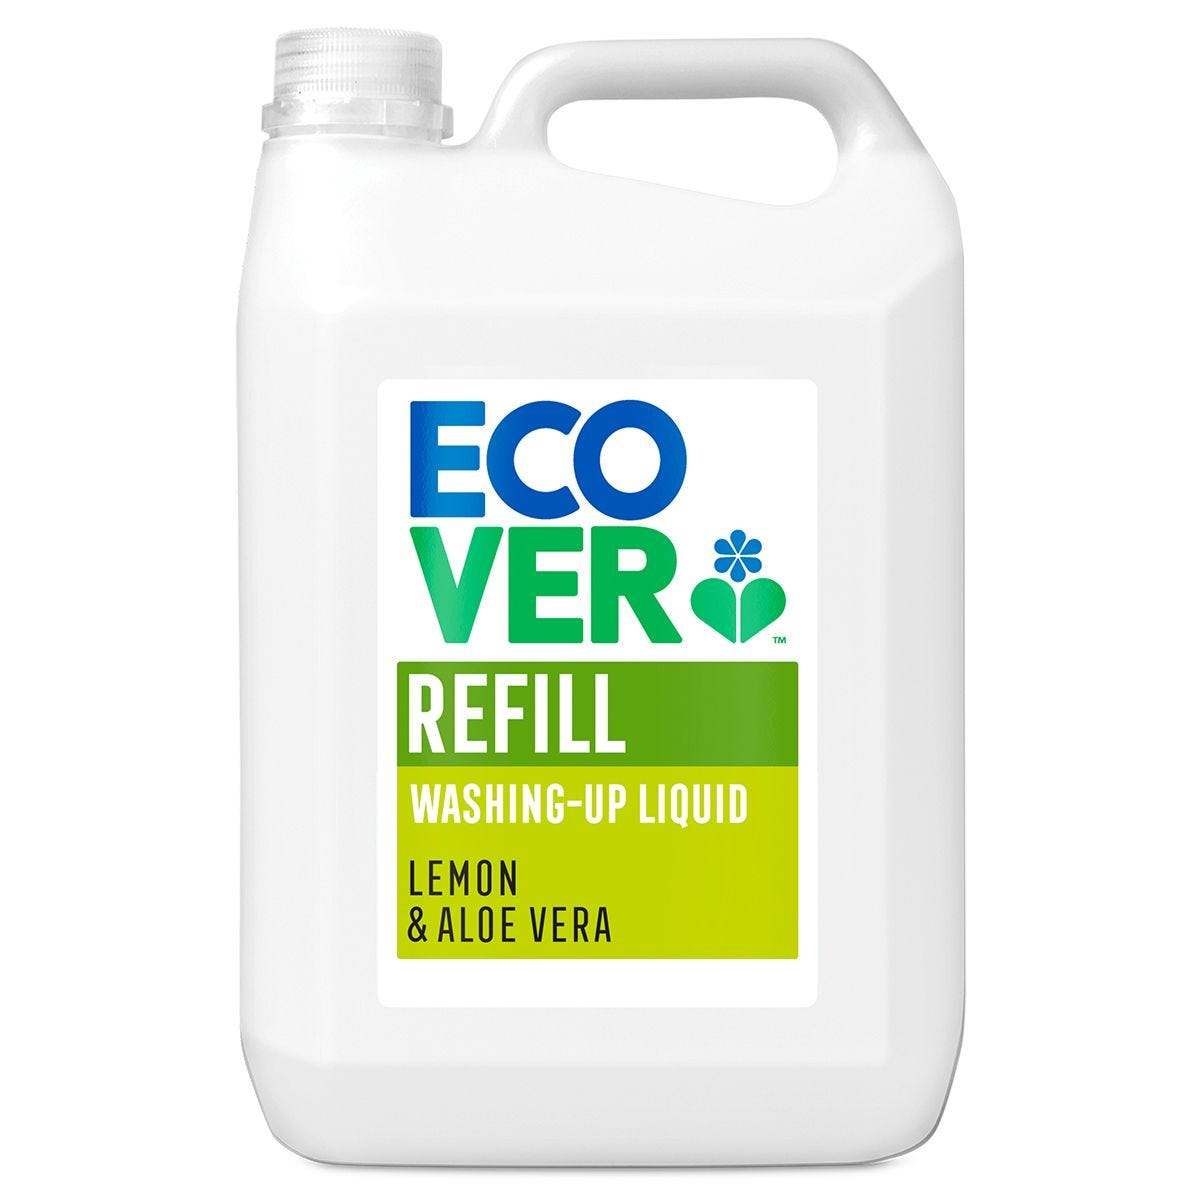 Ecover Washing Up Liquid 5L Refill - Lemon and Aloe